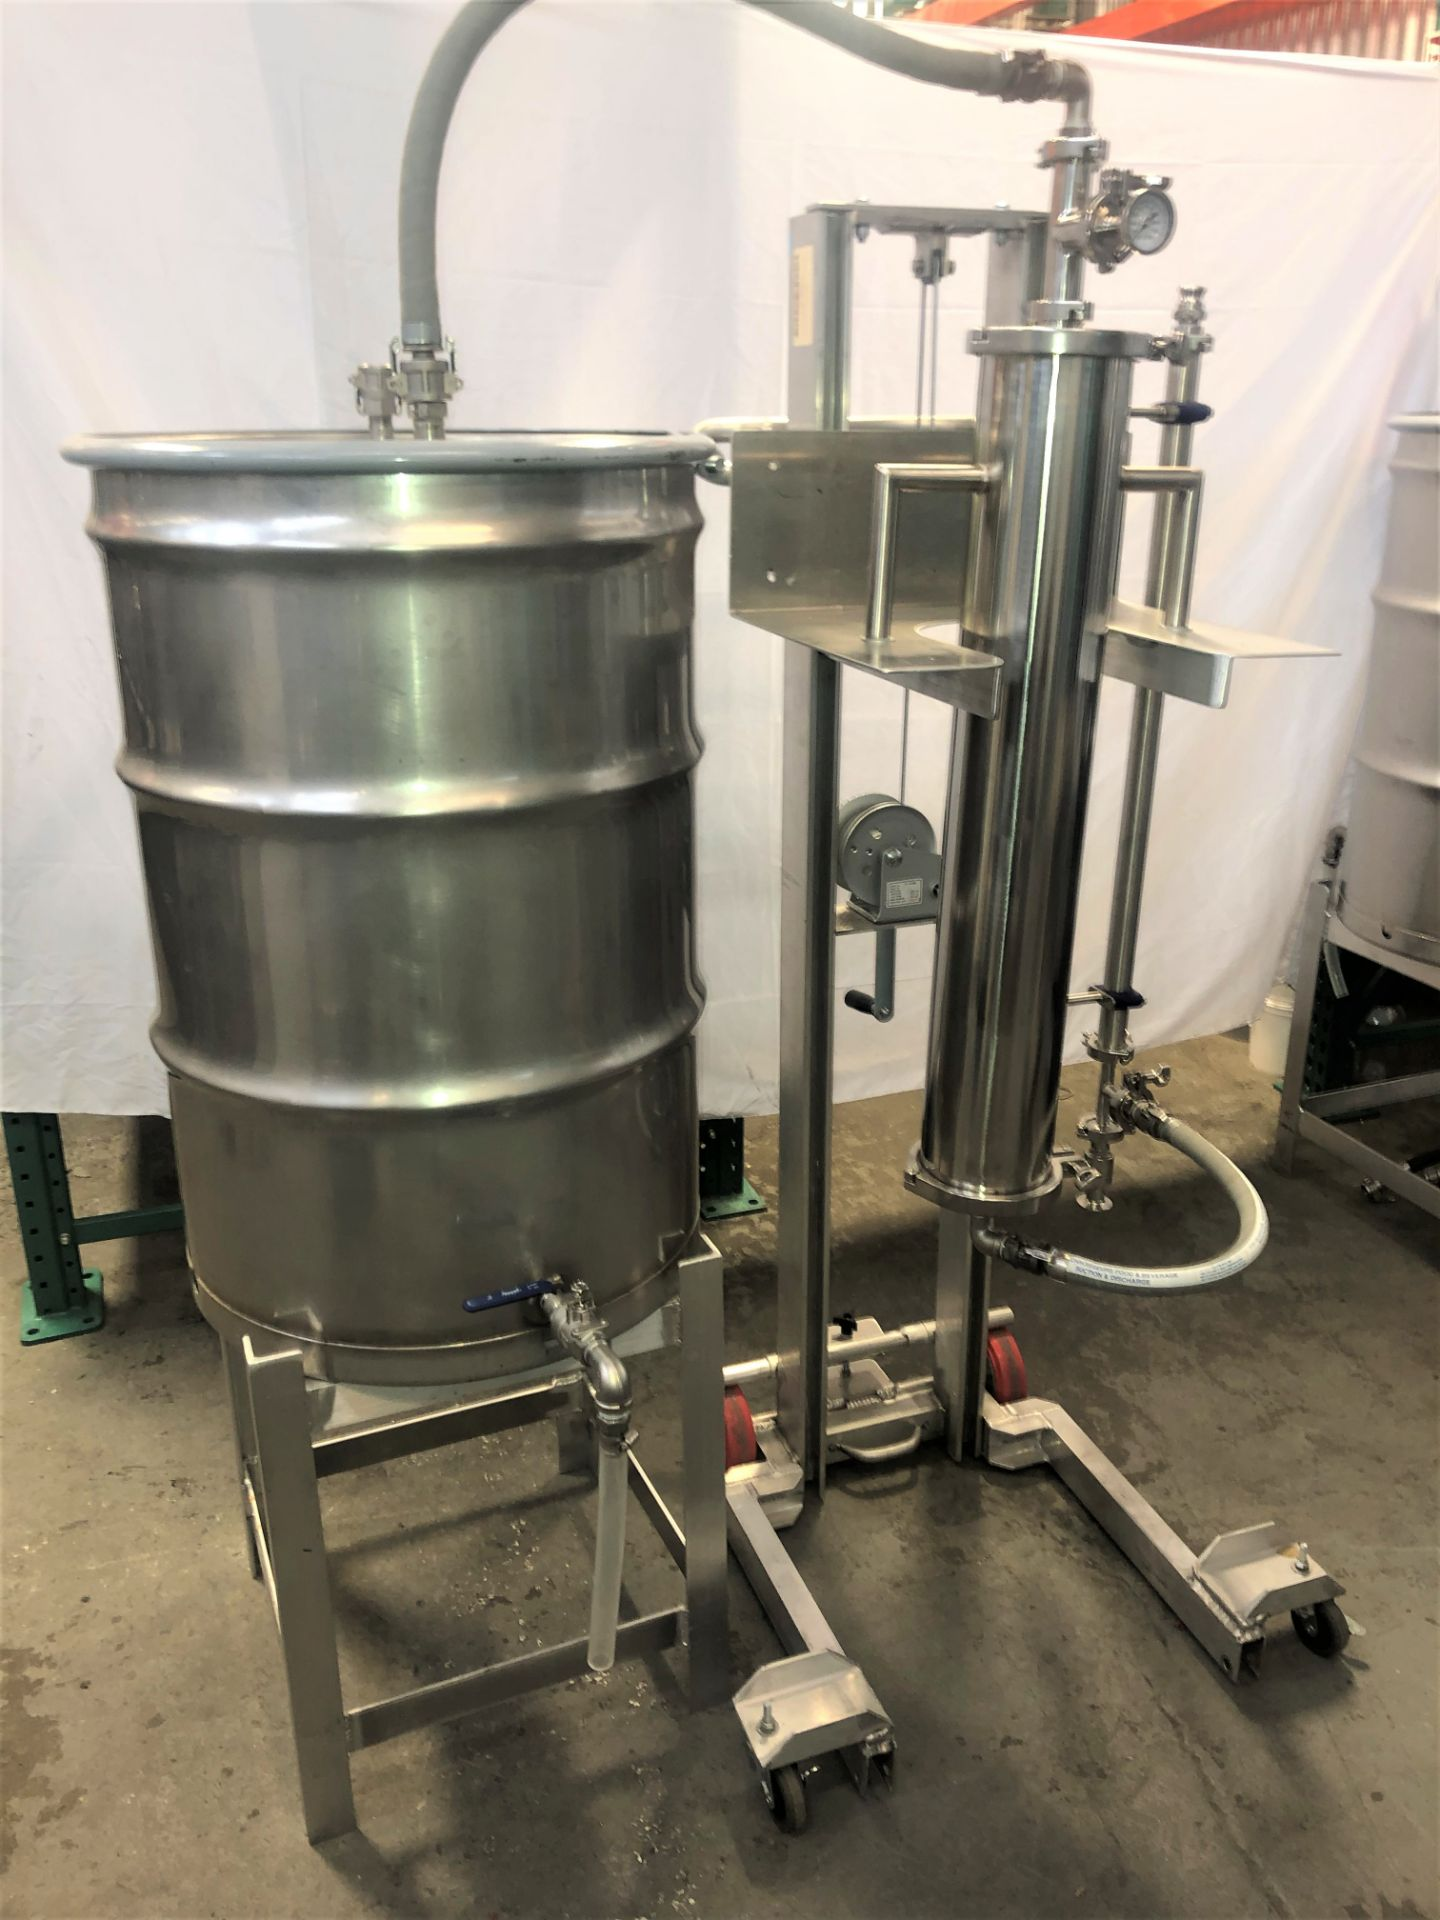 Used/Refurbished-CRCfilters Ethanol Dehydration System EDH-25. 25lb capacity 55 gal collection drum. - Image 2 of 6